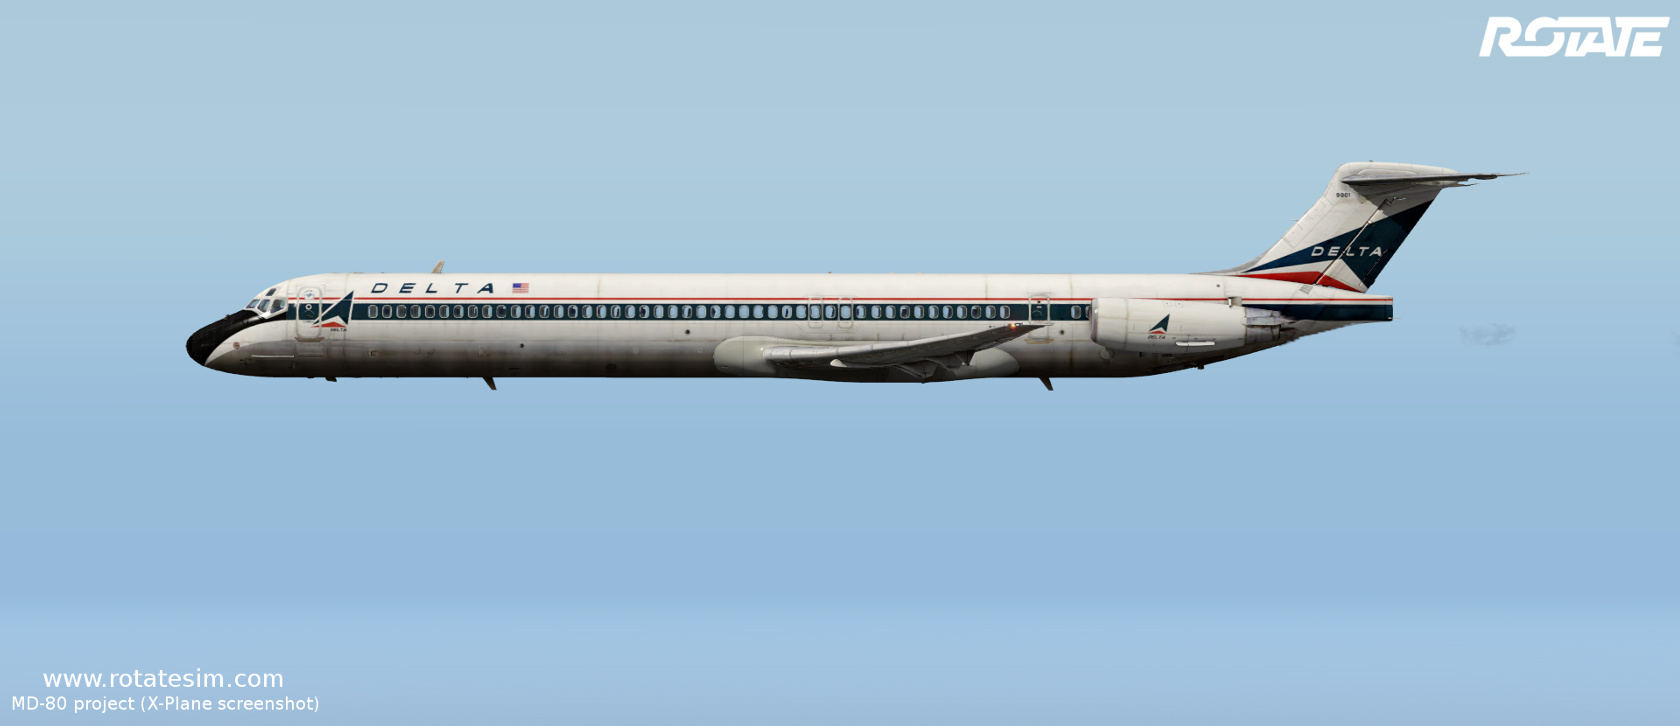 MD-80 Screenshot 44